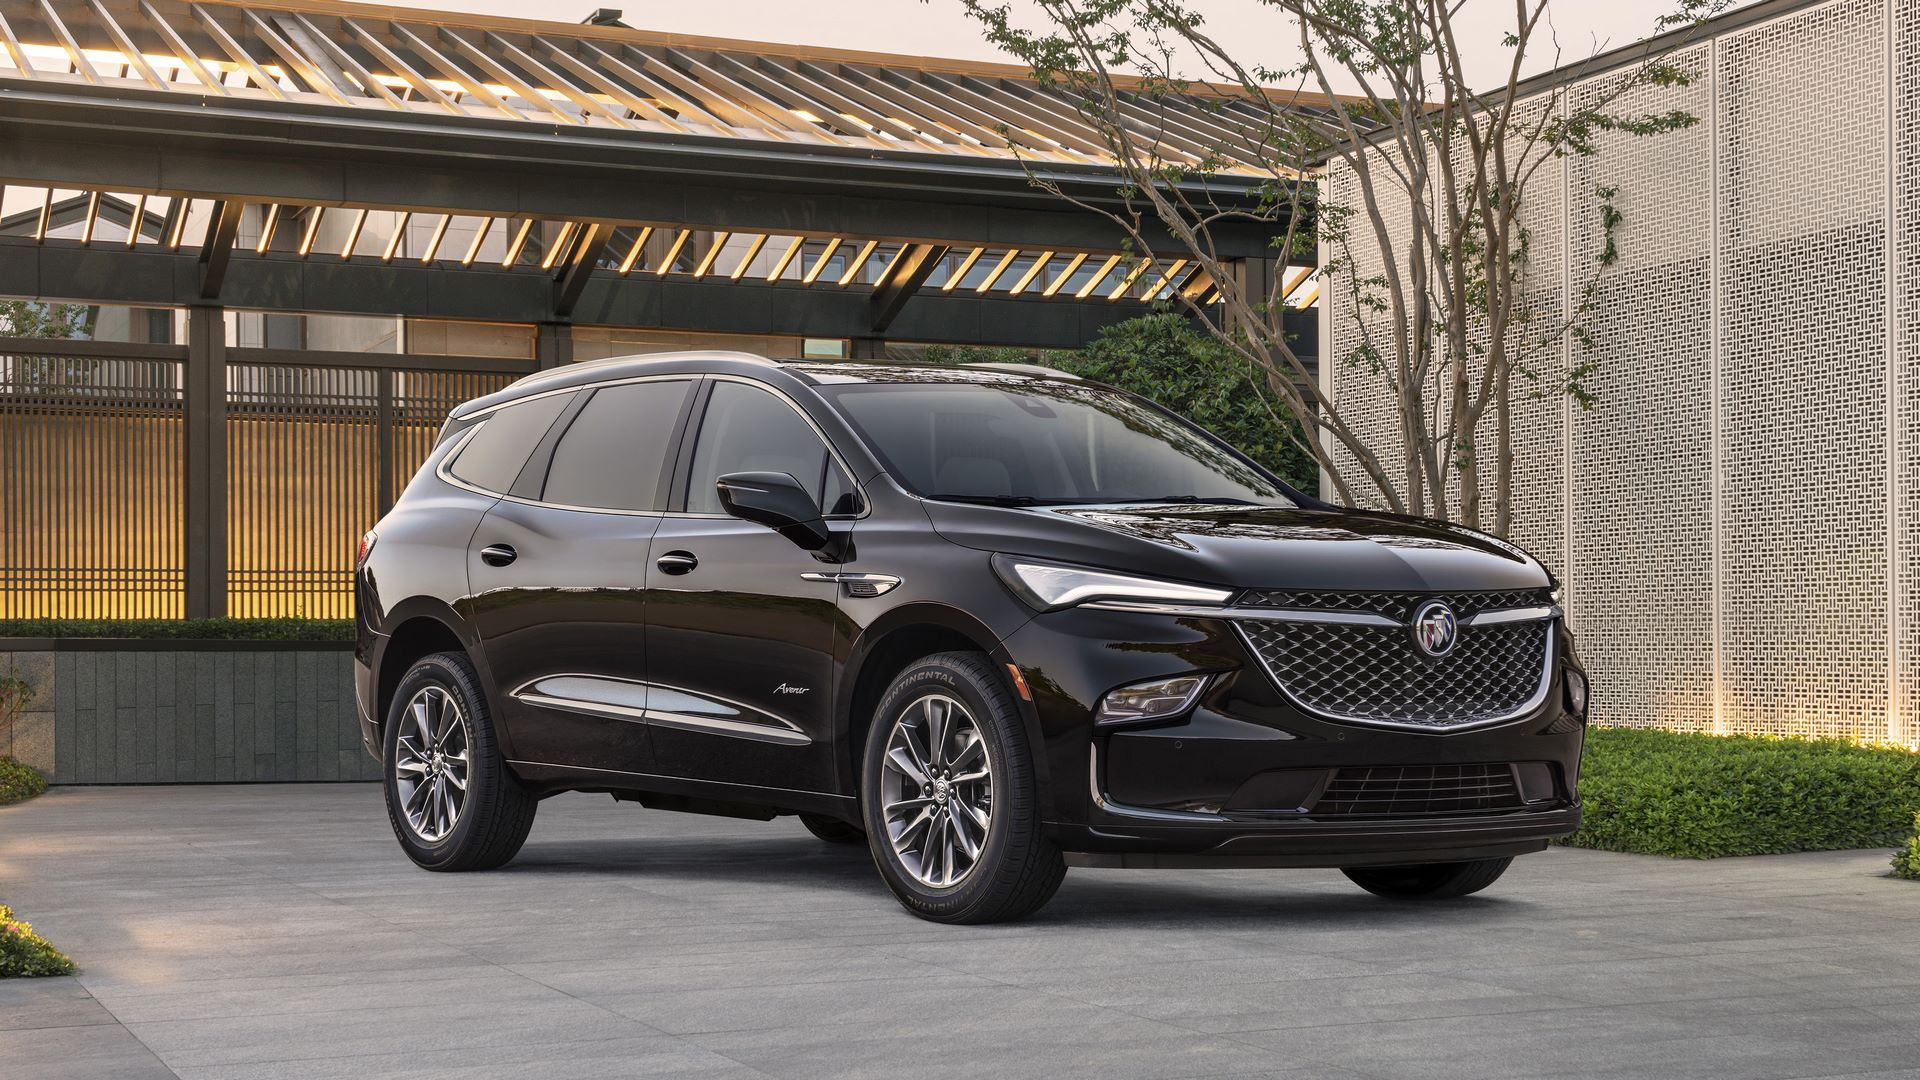 The 2022 Enclave is a fresher, sleeker model and will include the signature styling, features and technologies that premium SUV customers expect and appreciate.